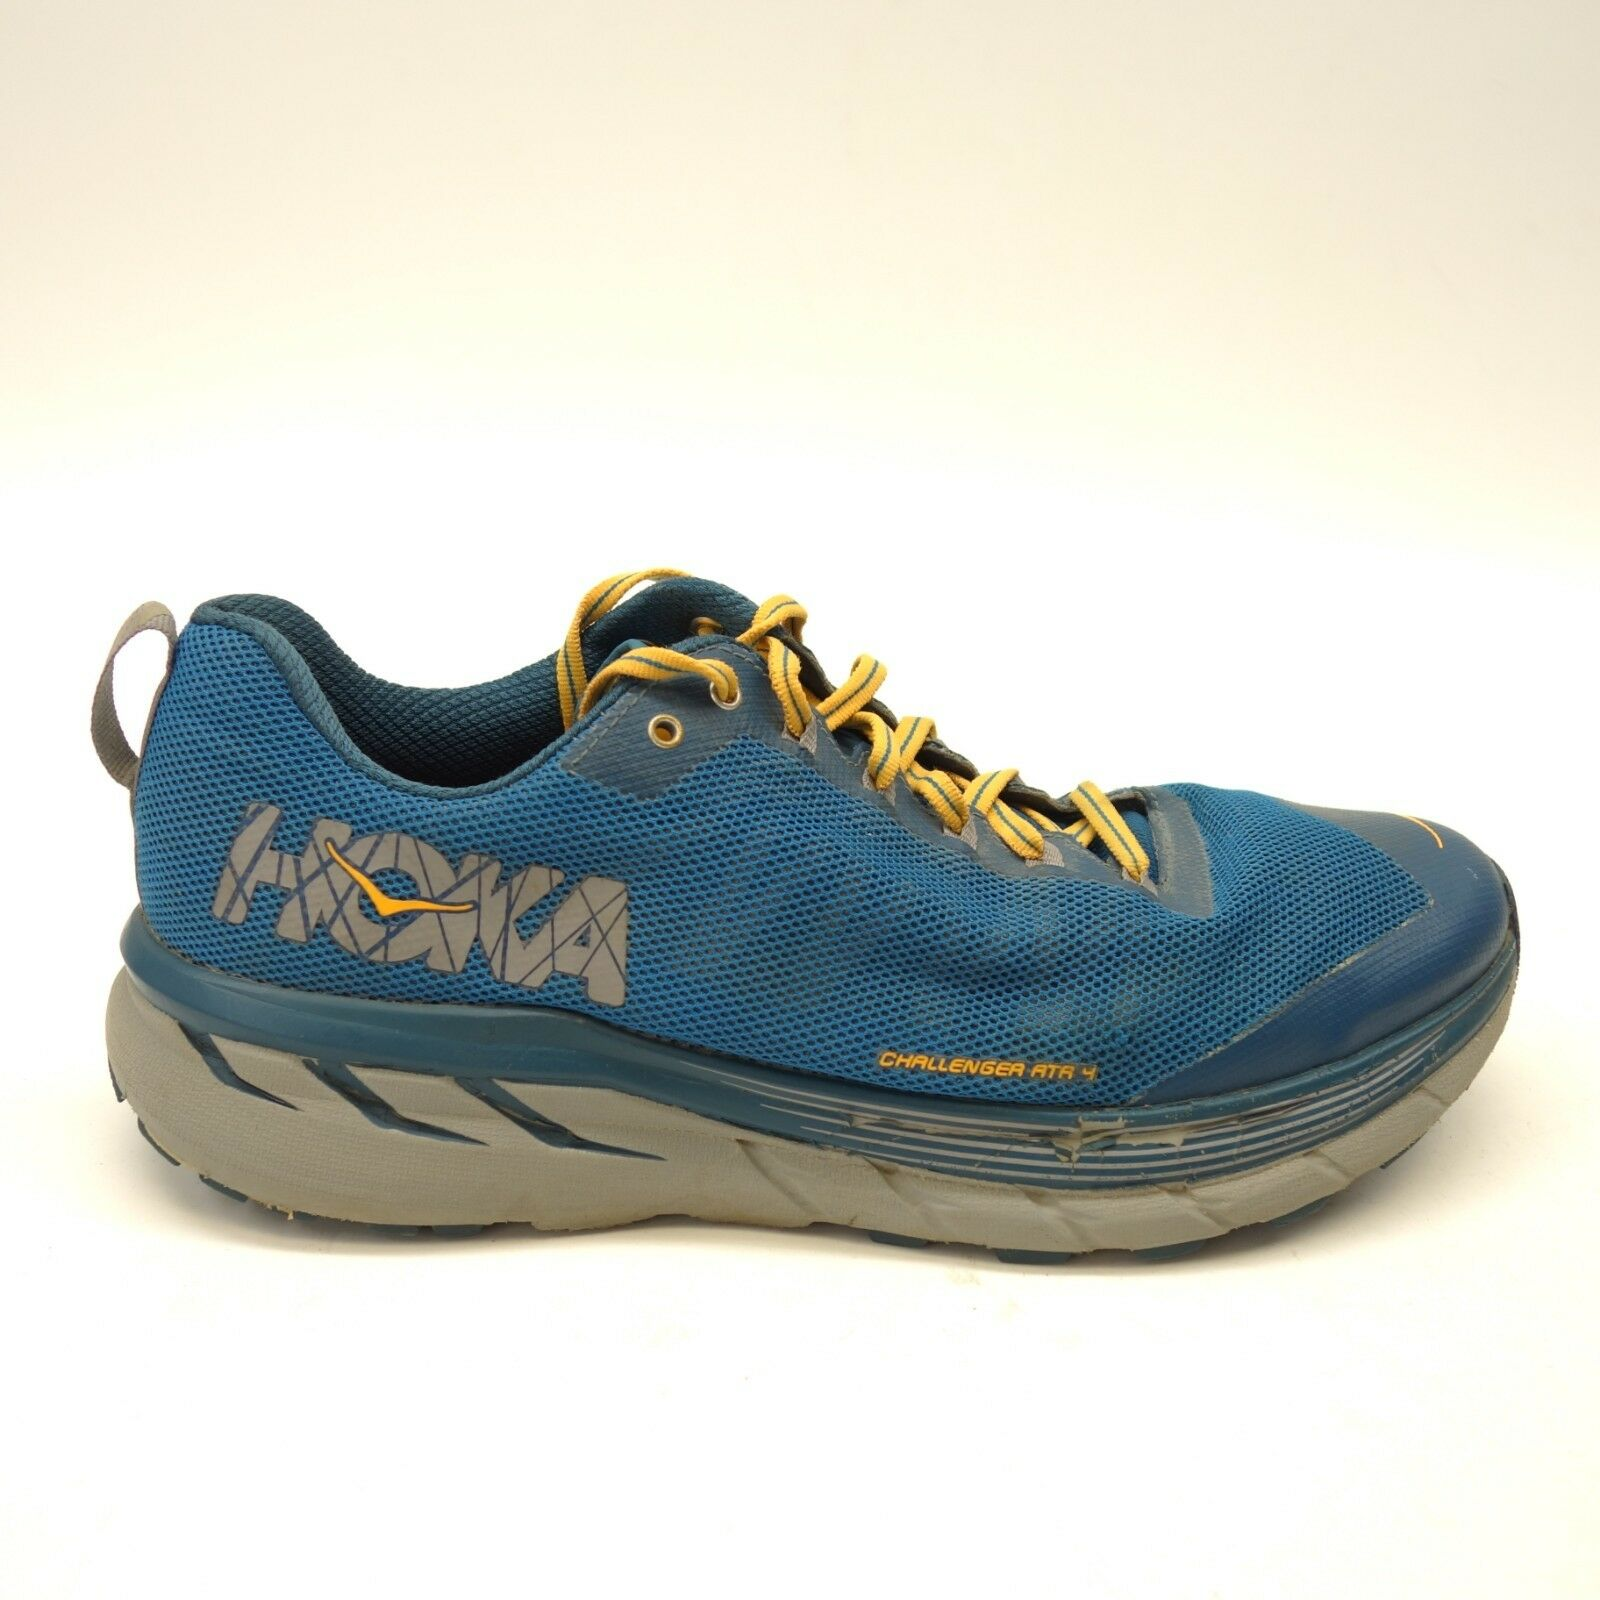 Hoka One One Mens Challenger ATR 4 Athletic Trail Running shoes Size 10